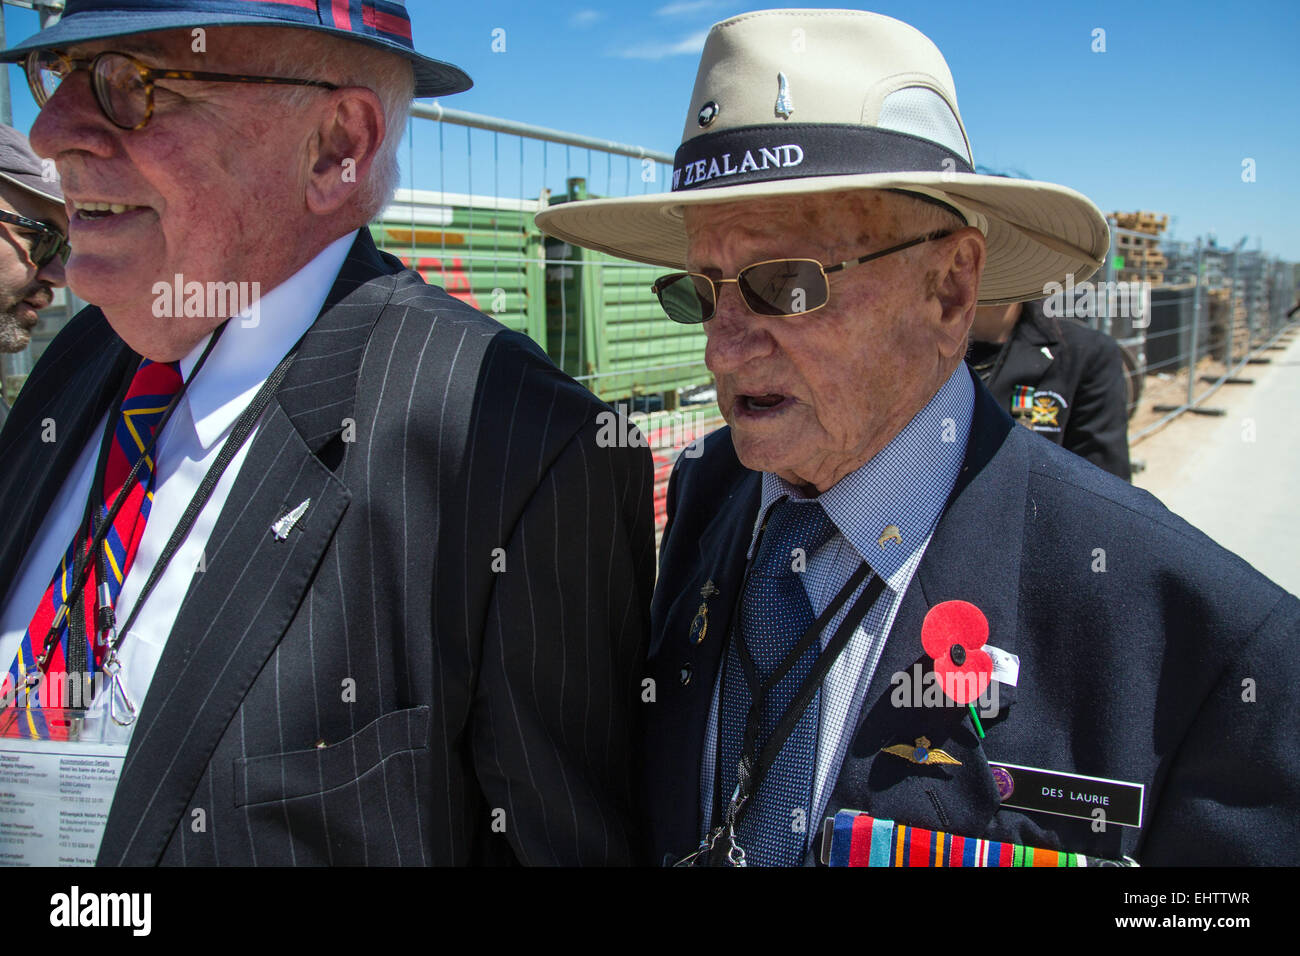 COMMEMORATION OF THE 70TH ANNIVERSARY OF THE NORMANDY LANDINGS, FRANCE - Stock Image